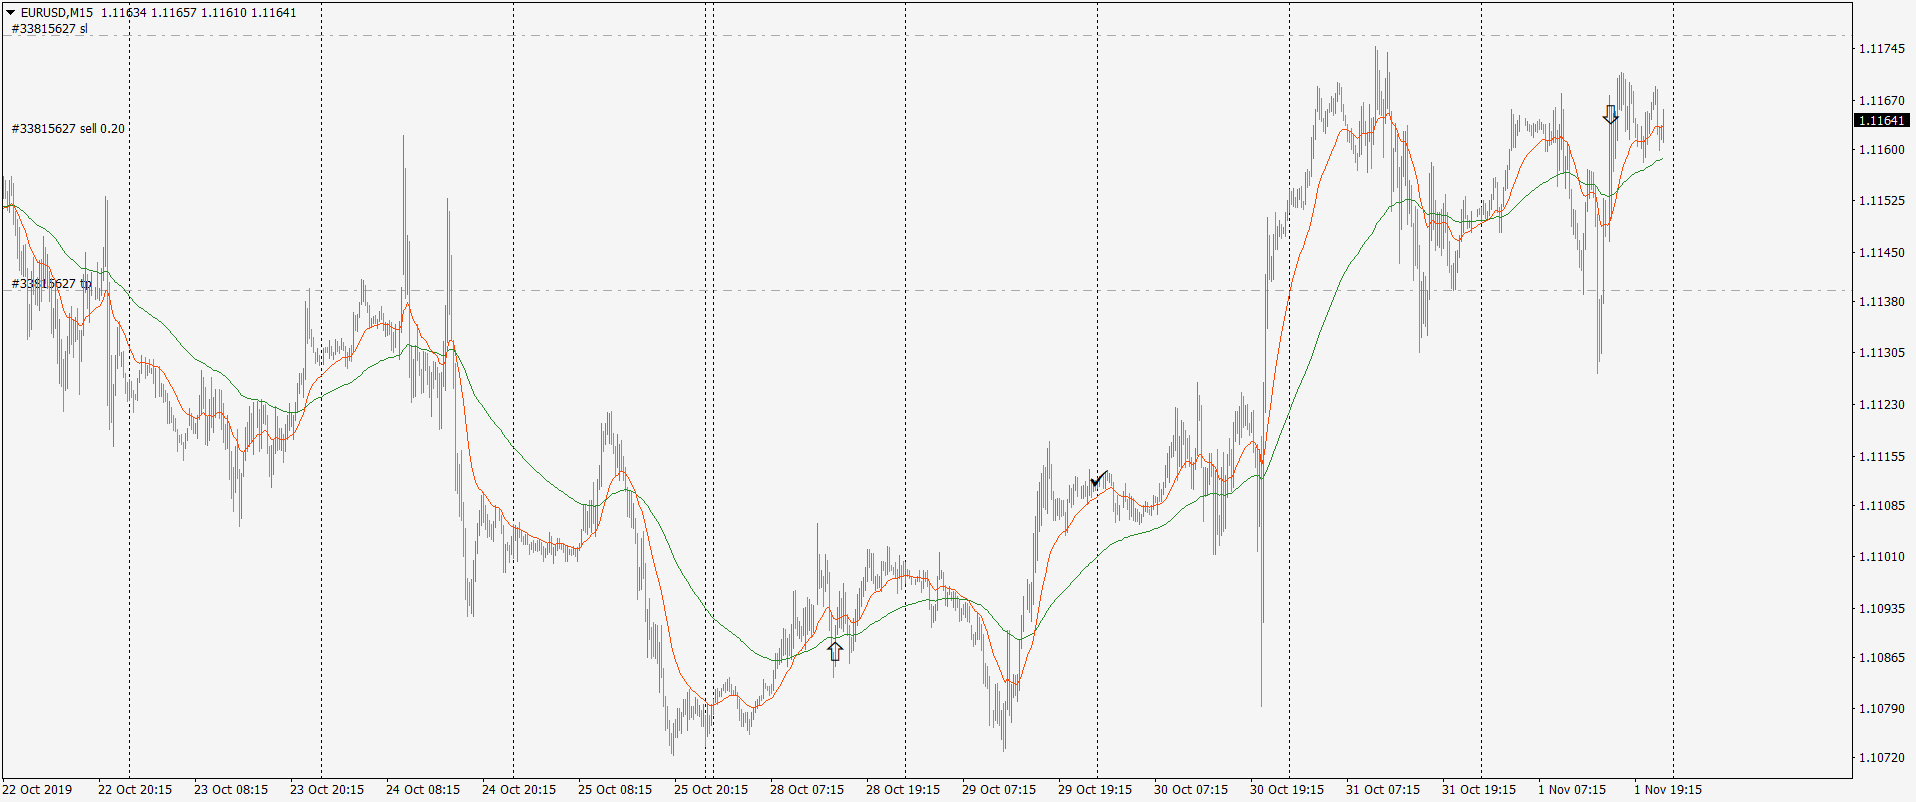 19-11-02-eurusd-m15-tradexfin-limited.png